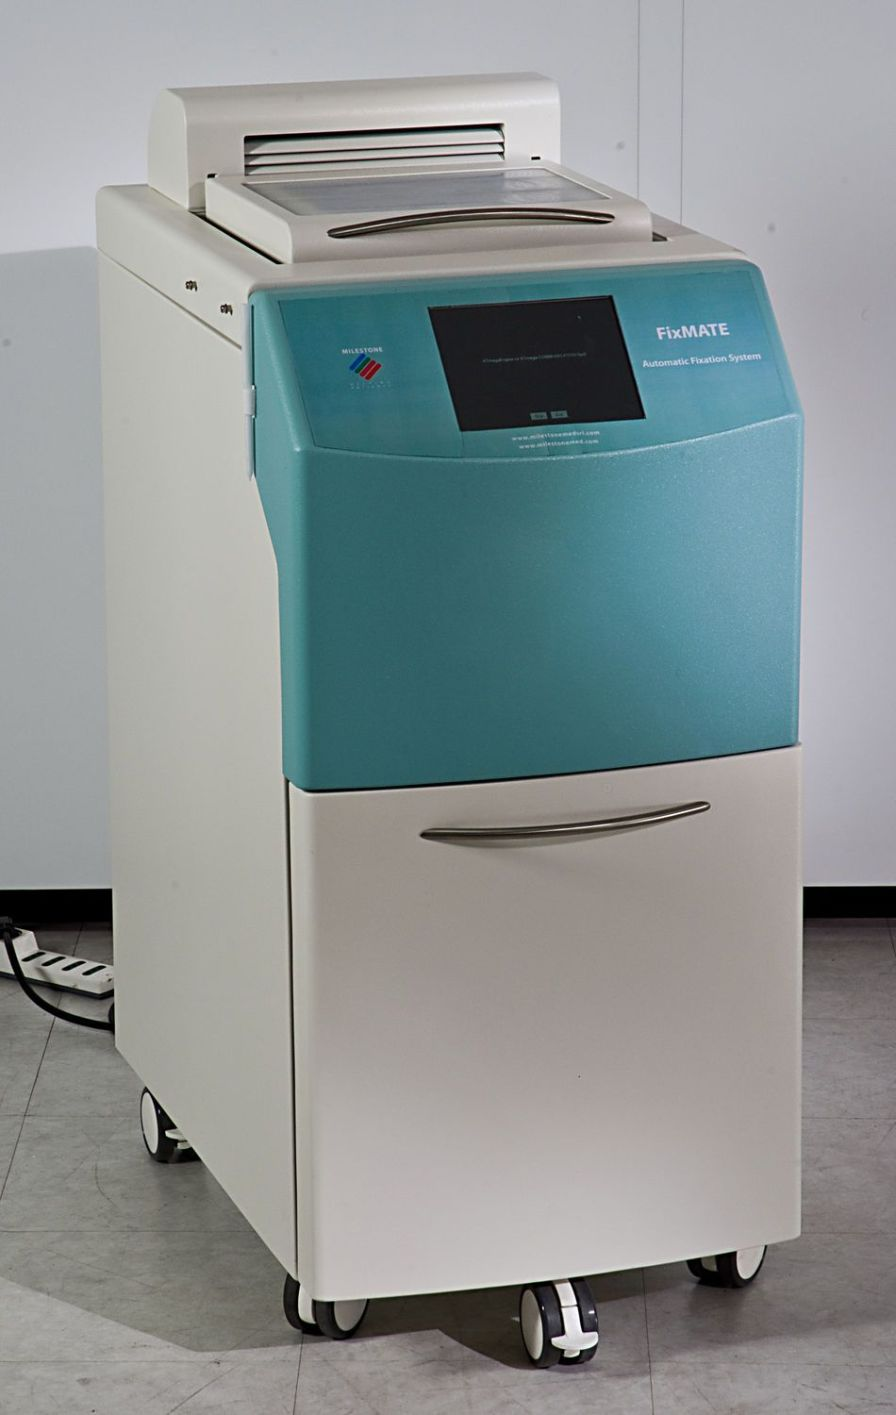 Tissue automatic sample preparation system / fixation / for histology FixMATE Milestone